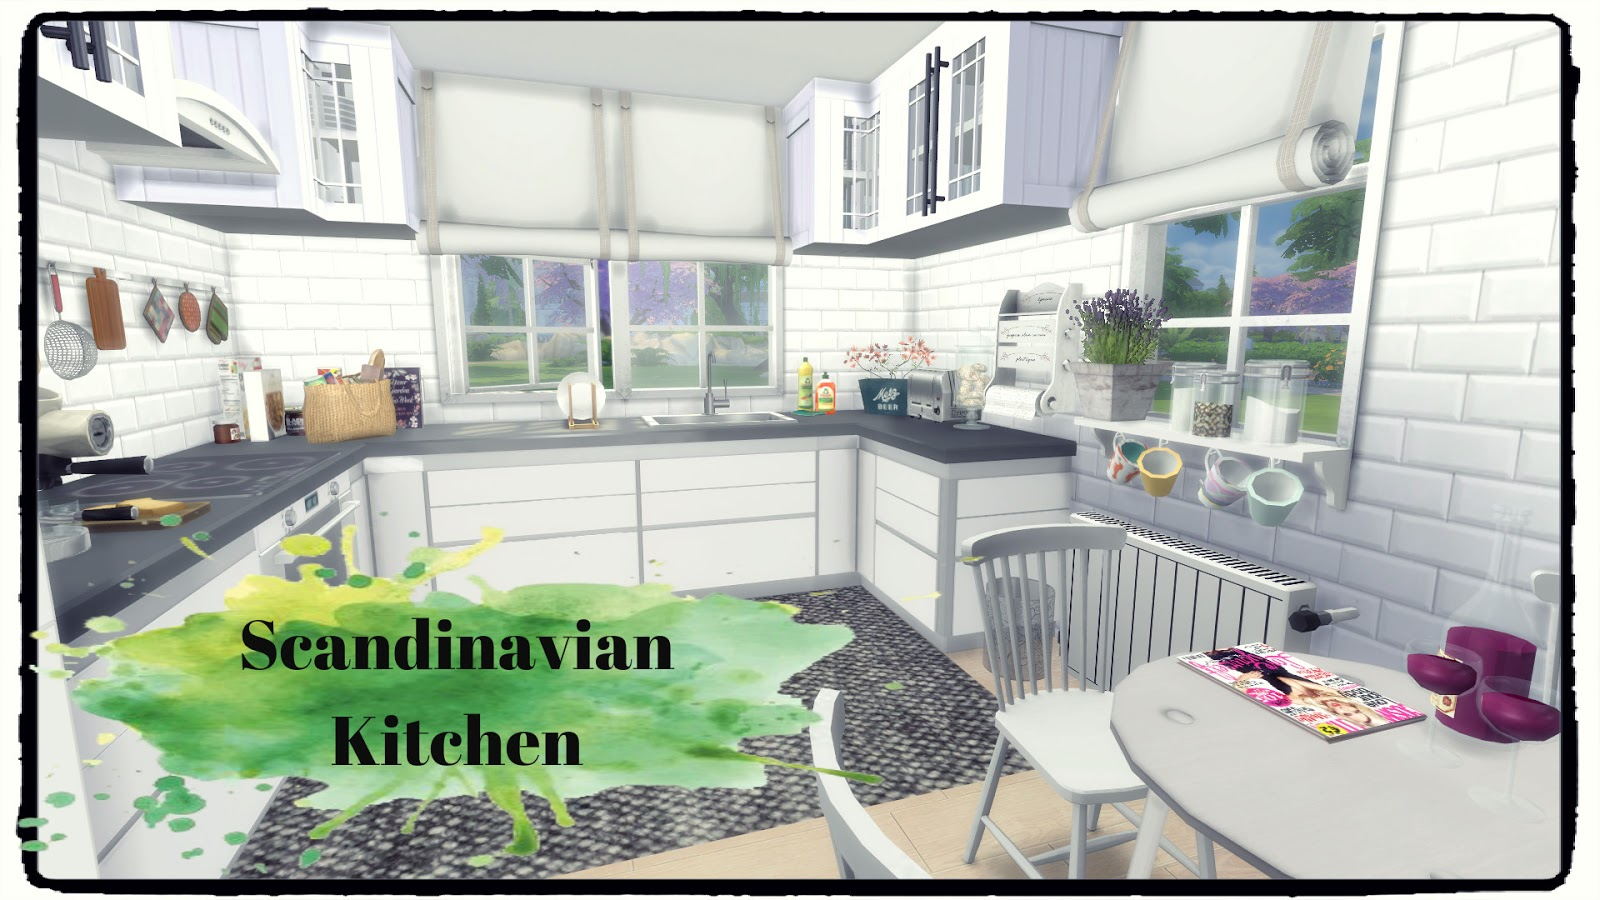 Scandinavian Kitchen by Dinha Gamer